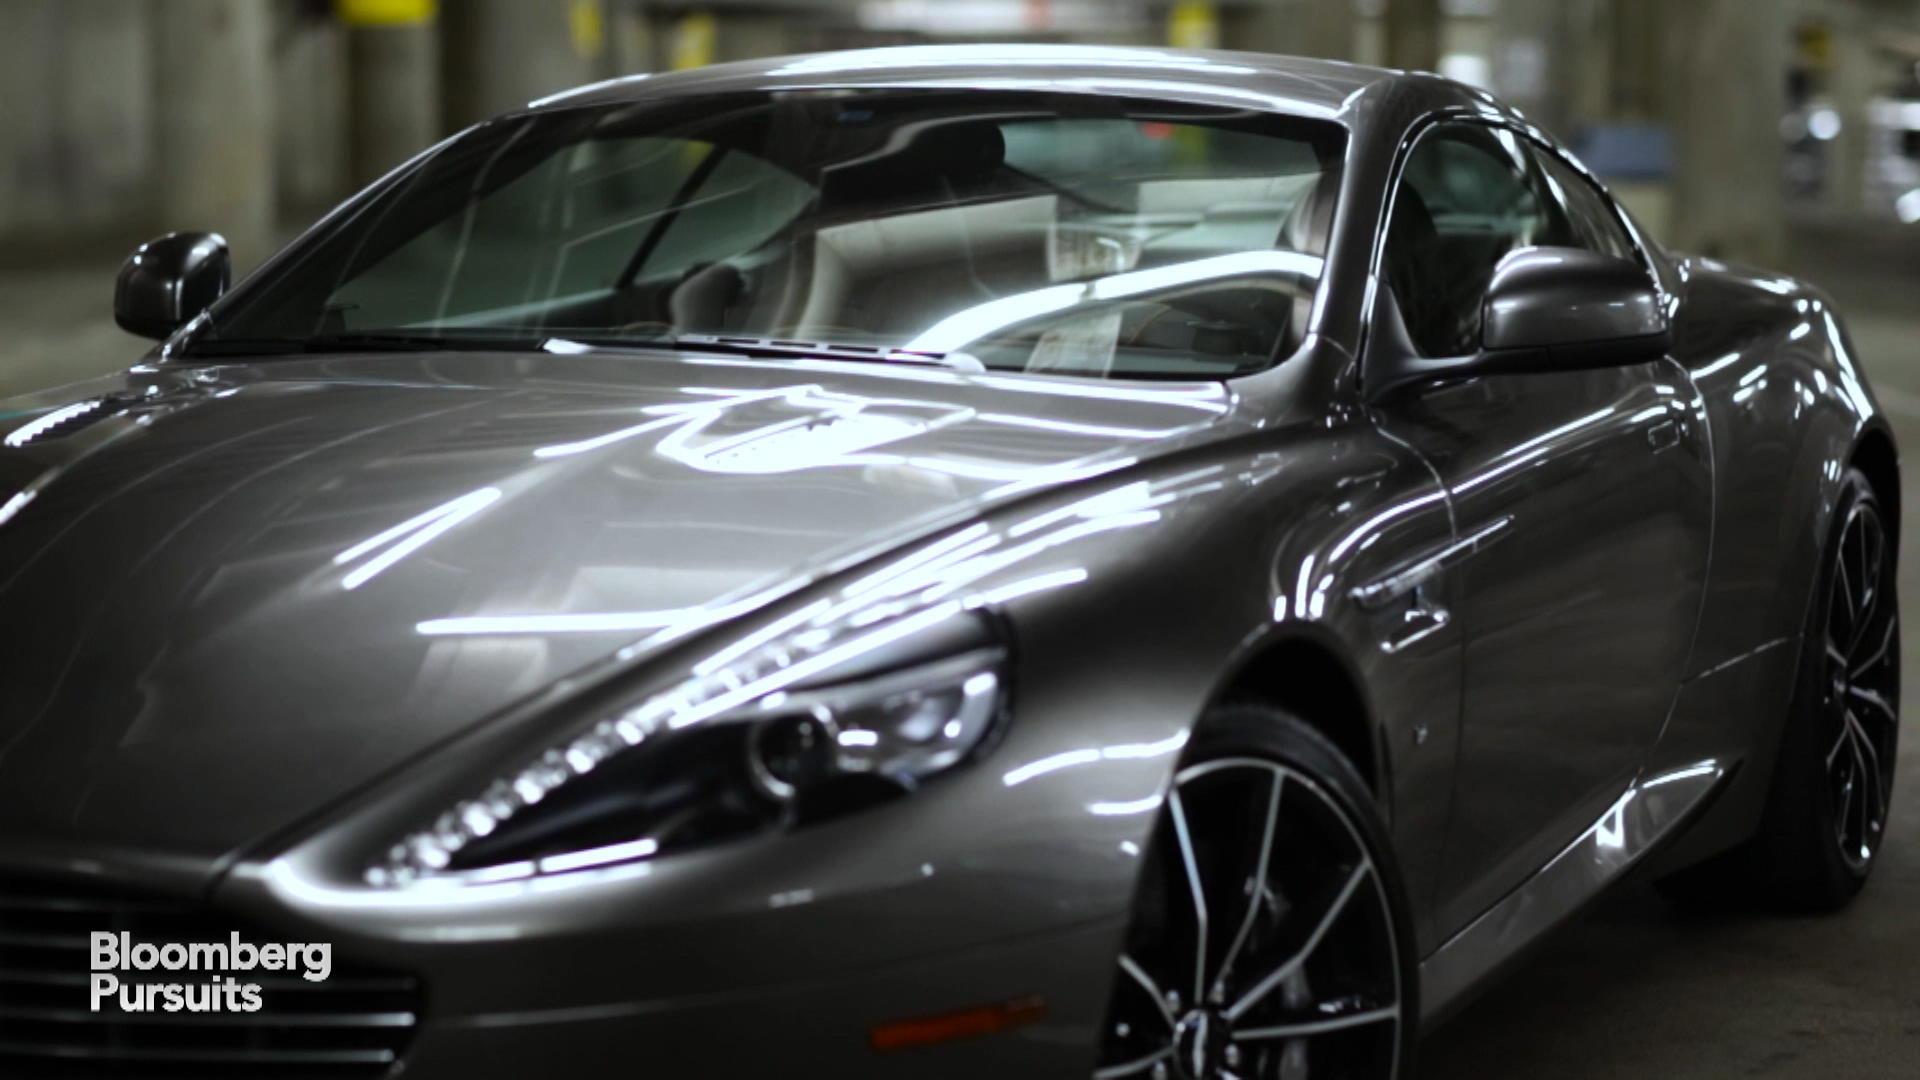 The 2016 Aston Martin Db9 Gt Is James Bond Perfect Bloomberg